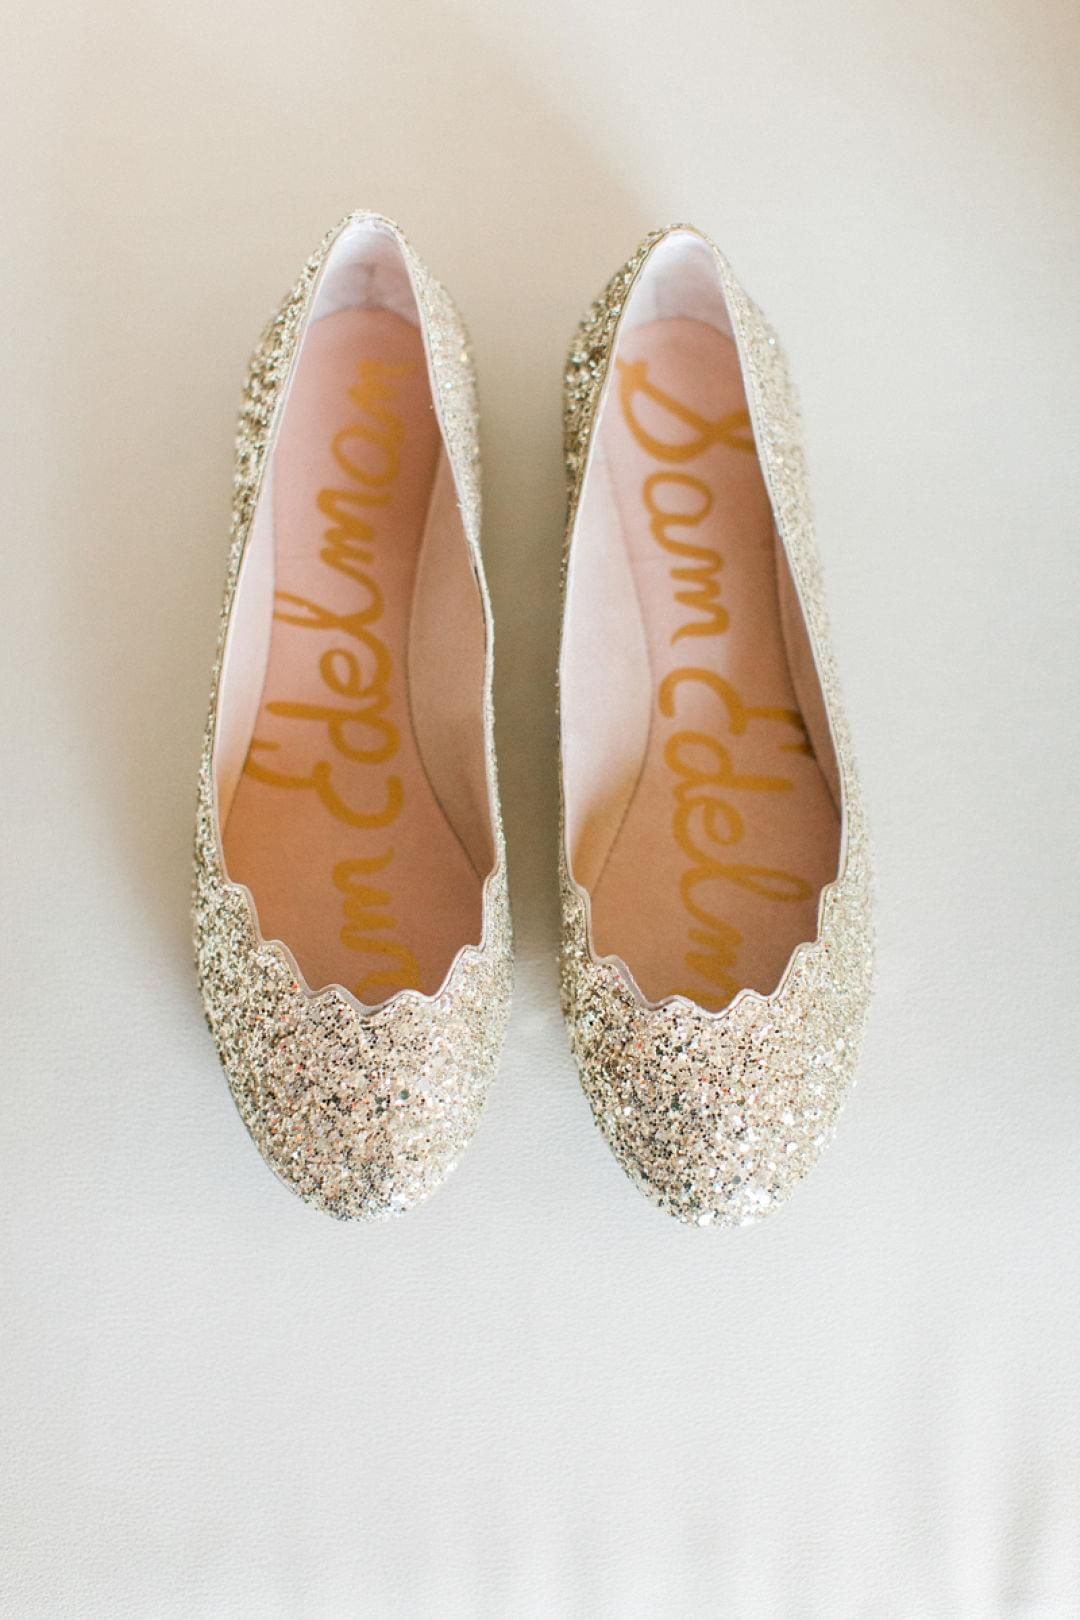 Wedding Shoes Gold Flats Sparkly Scalloped Sparkles